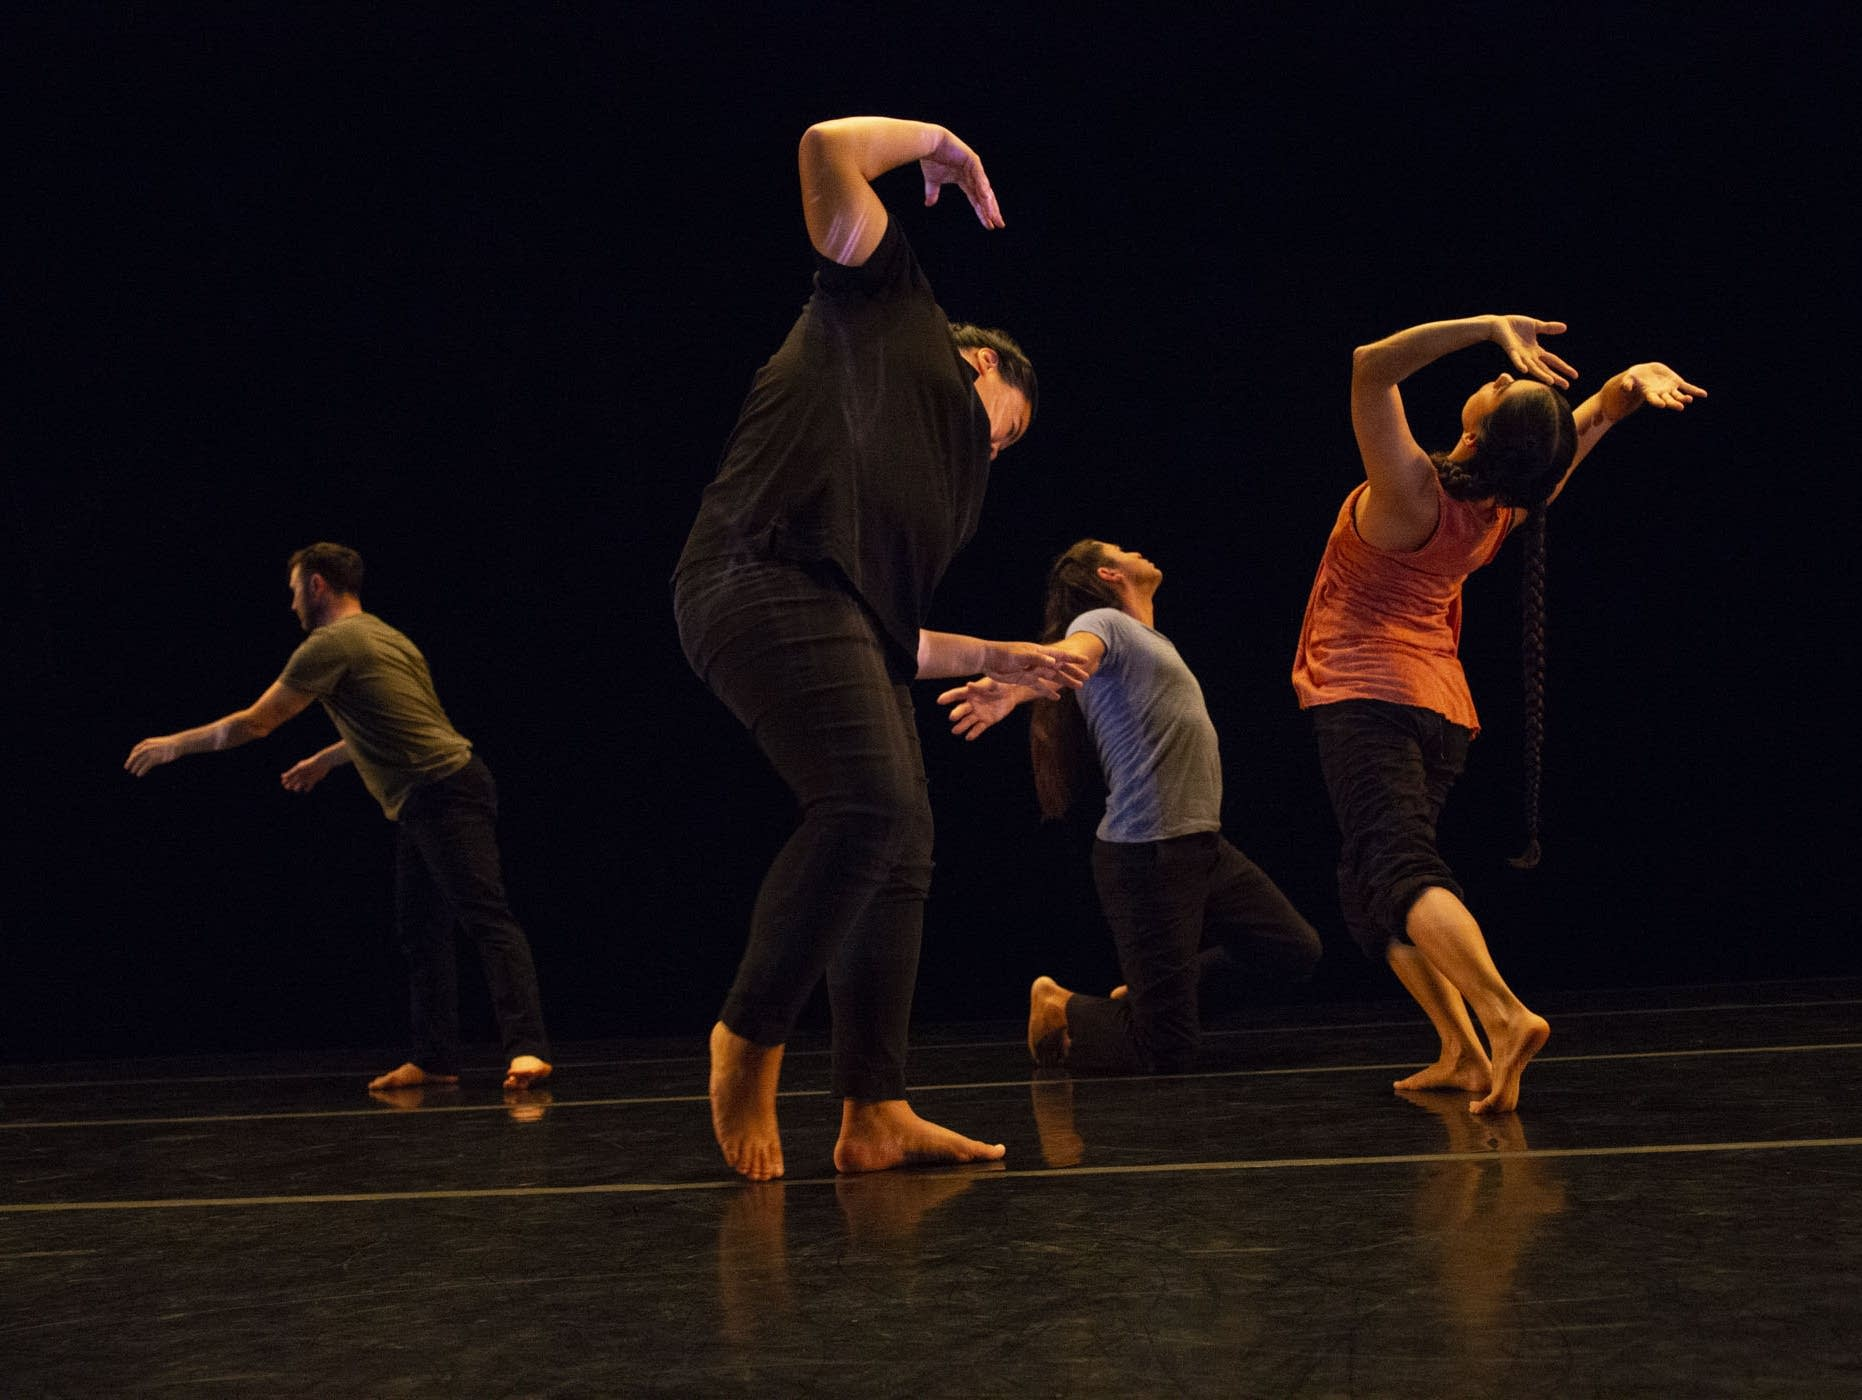 """Rosy Simas Danse will perform """"Weave"""" at the Ordway in St. Paul on Saturday. """"Weave"""" is inspired by the interdependent nature of our world. Courtesy of Douglas Beasley"""